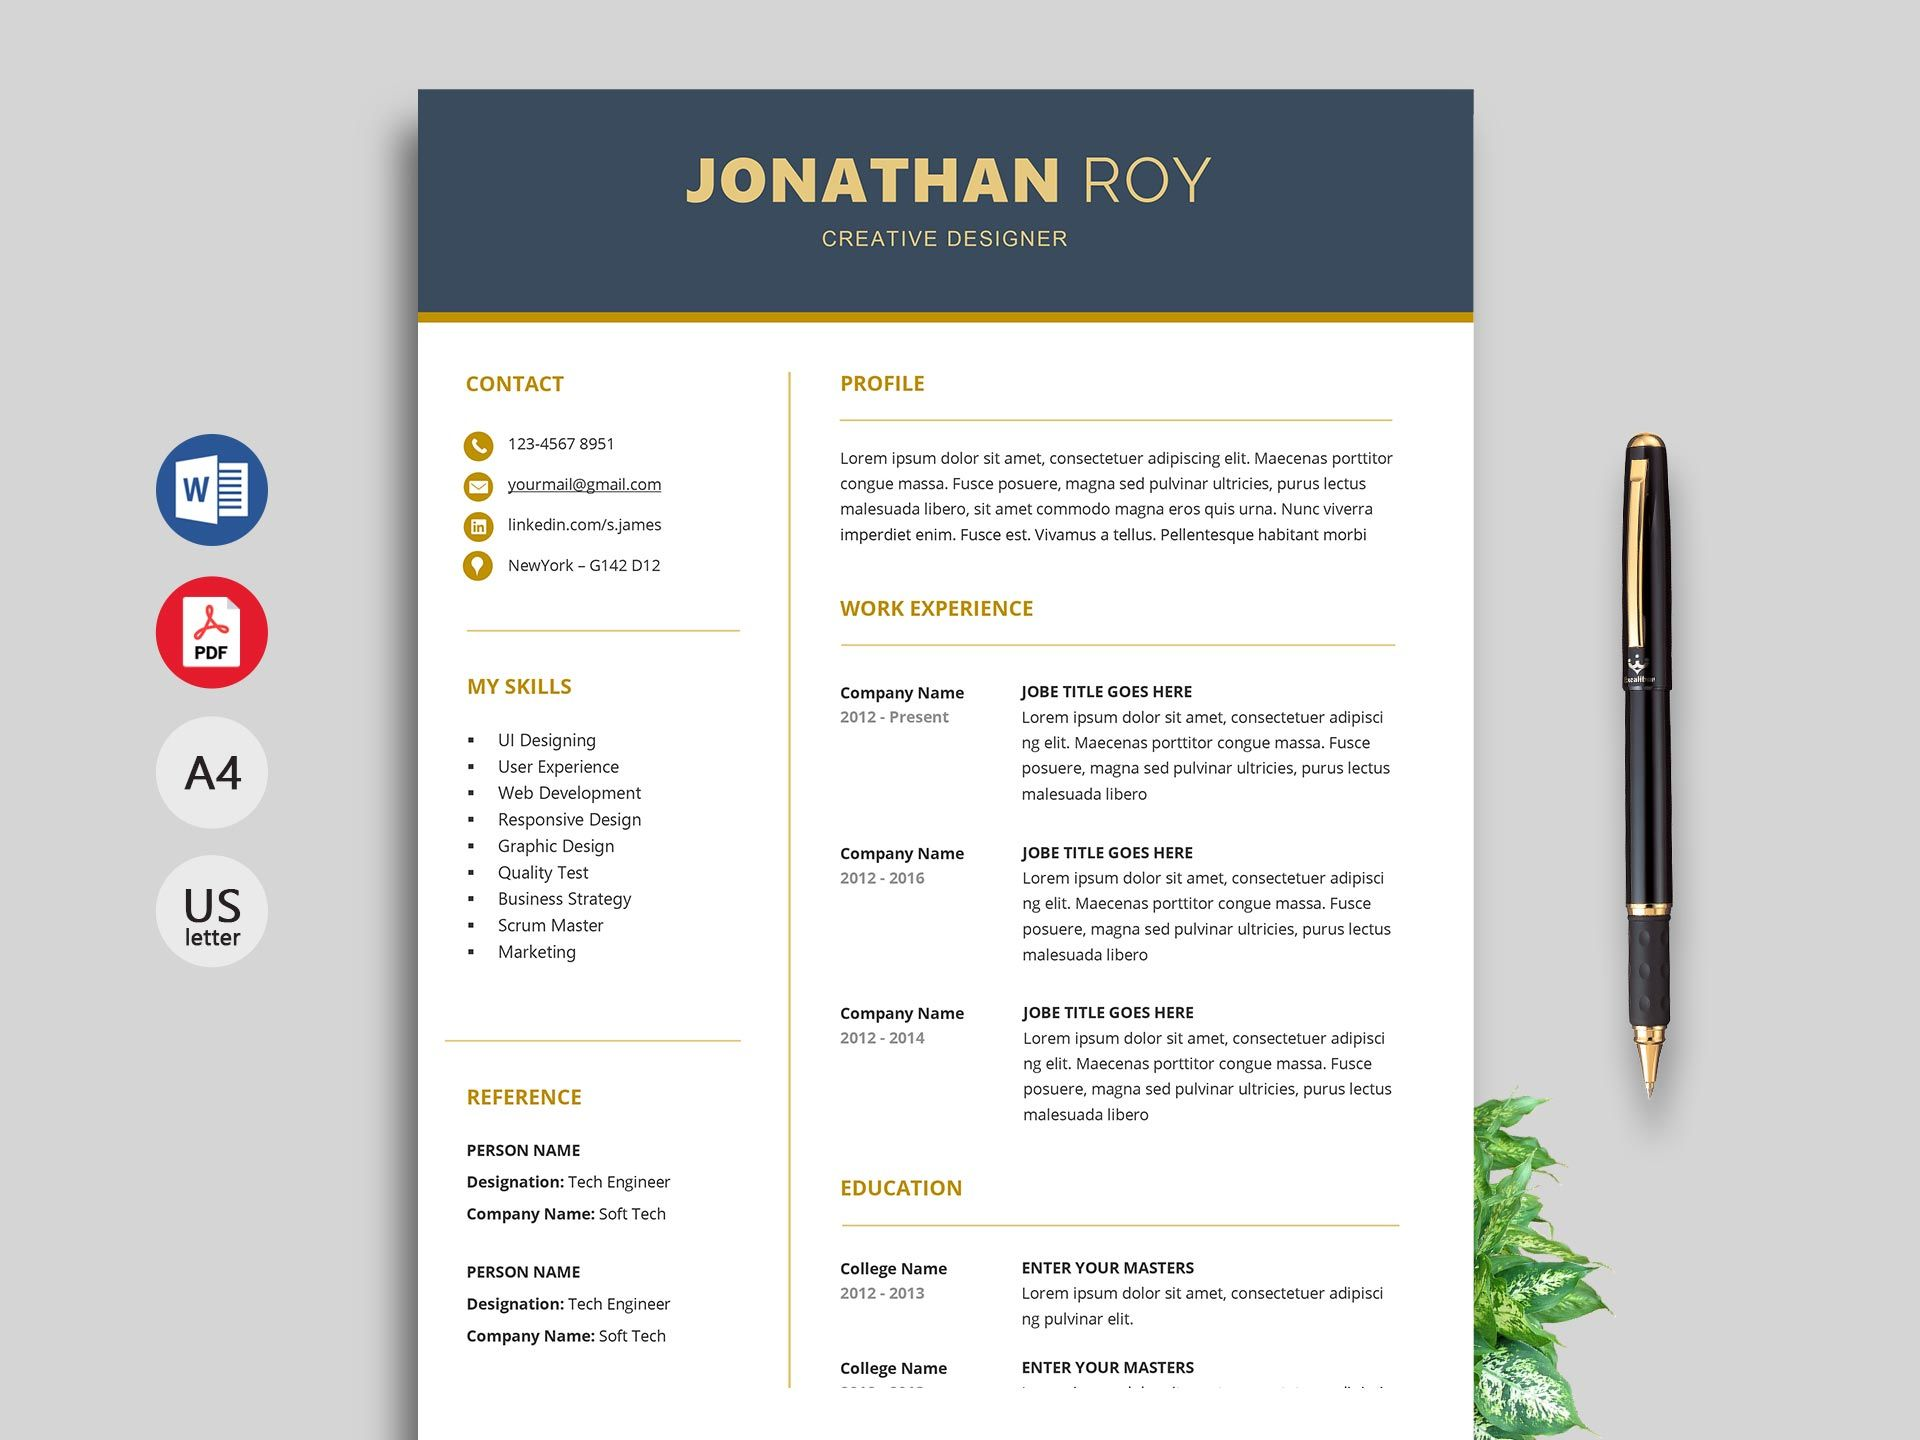 Free Resume Templates 2020 Andriblog.design in 2020 Cv